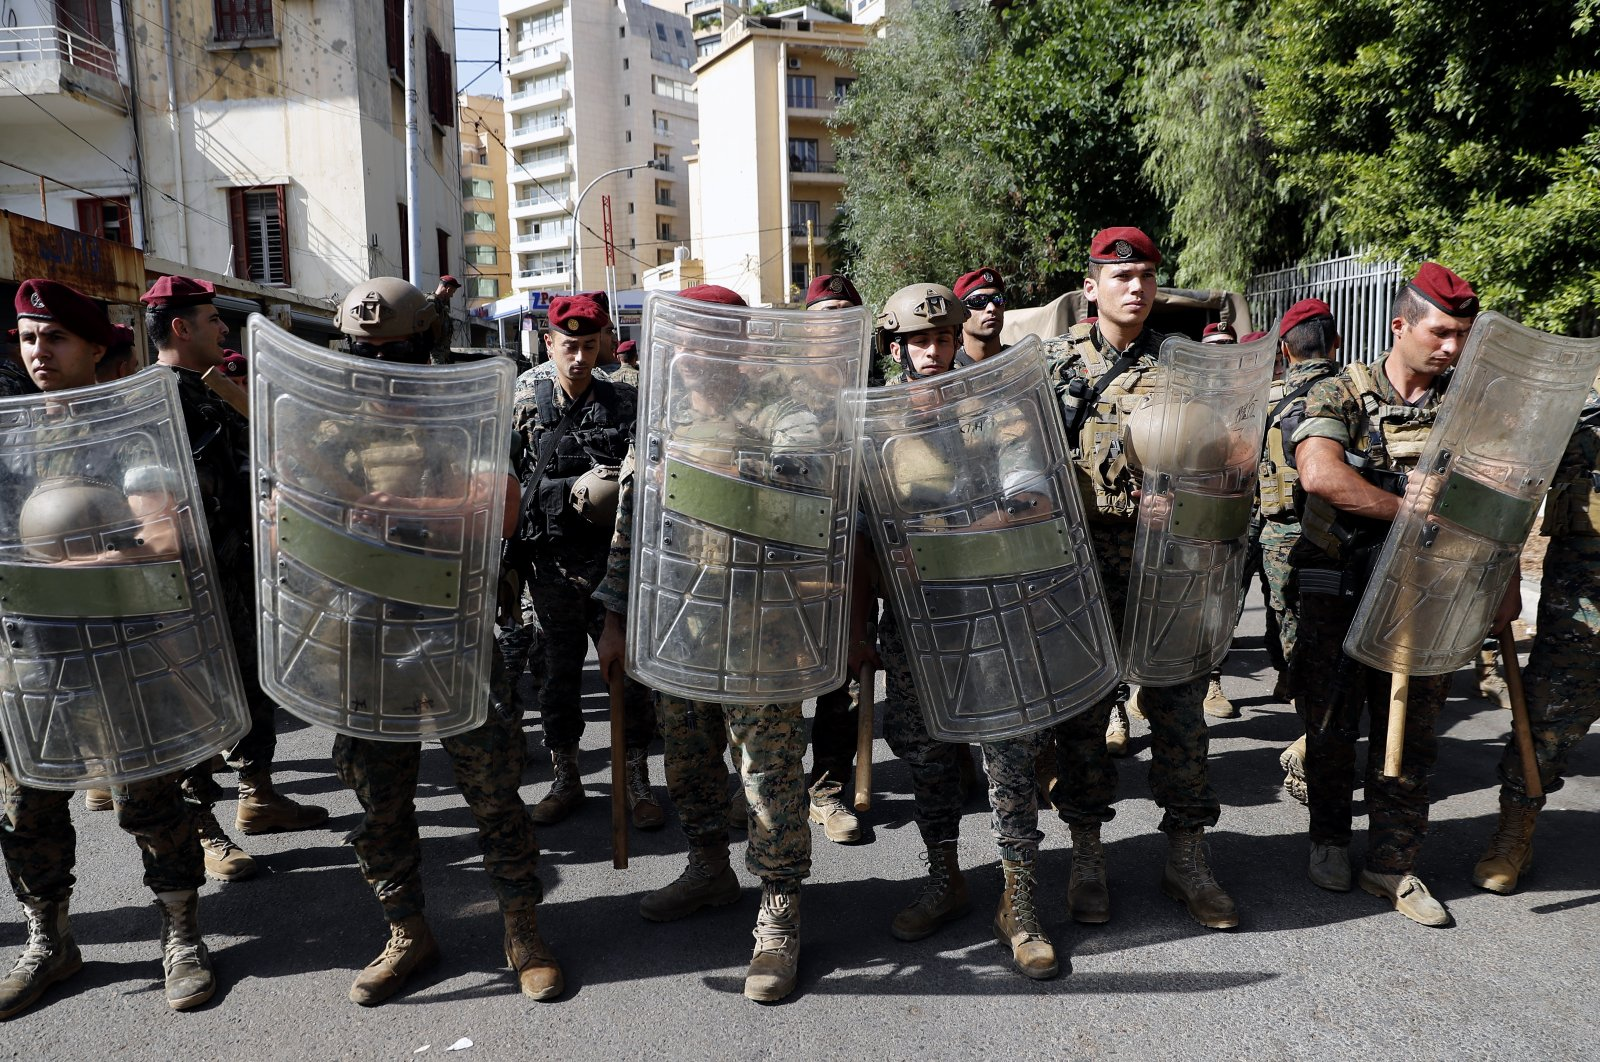 Lebanese troops stand guard near the Justice Palace as supporters of the Hezbollah and Amal groups protest against Judge Tarek Bitar who is investigating last year's deadly seaport blast, Beirut, Lebanon, Oct. 14, 2021. (AP Photo)